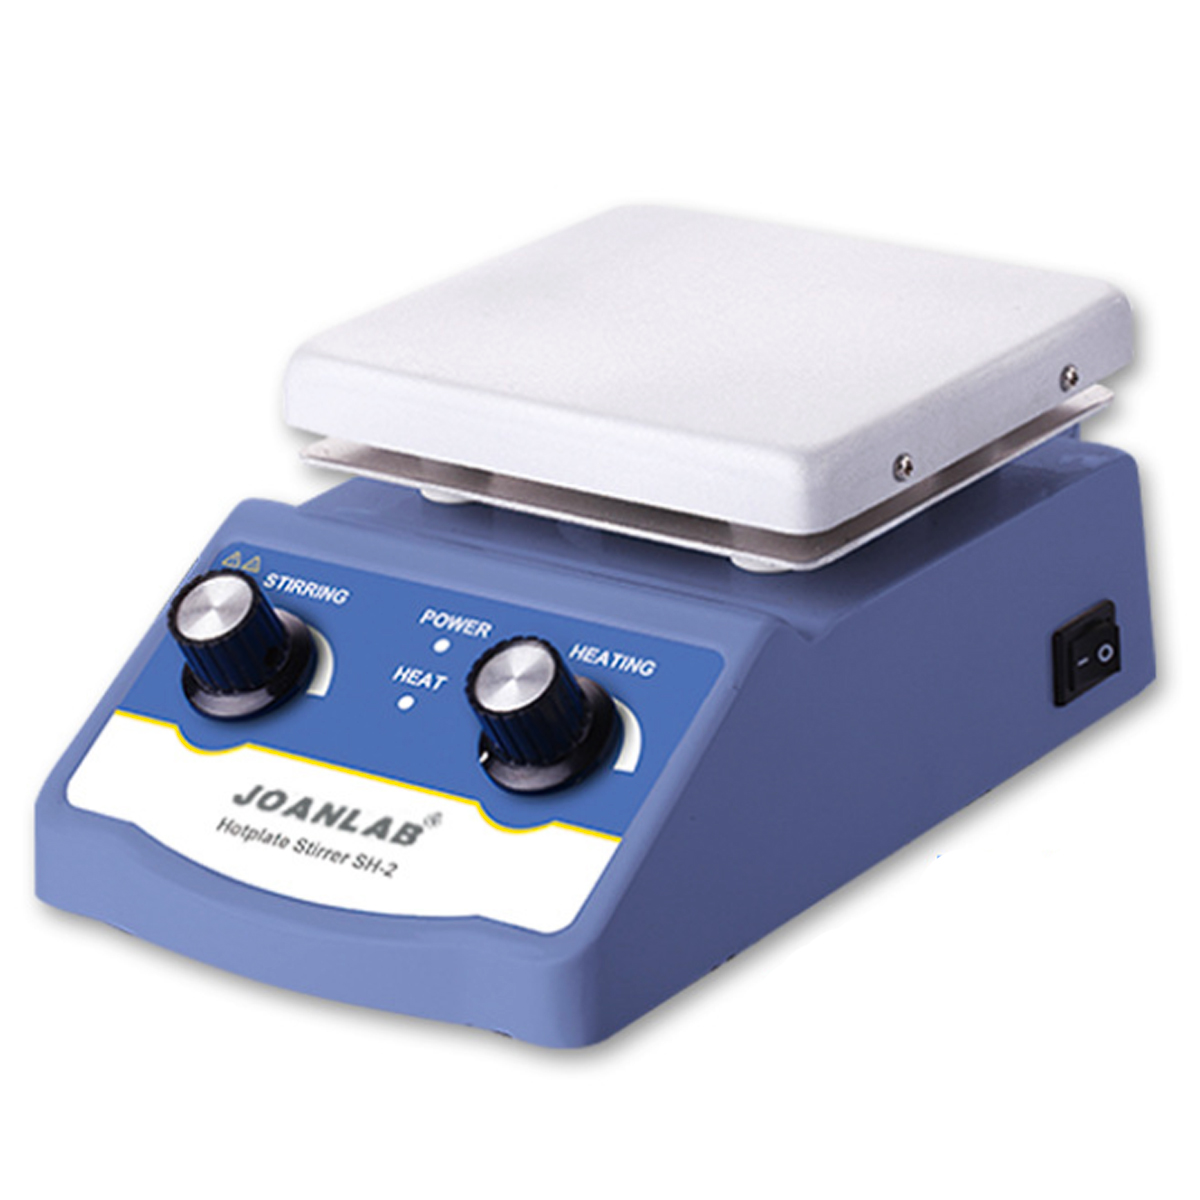 1L Heating Magnetic Stirrer 180W Magnetic Mixer With Stir Bar 1600rpm Max Stirring Hot Plate HS-12